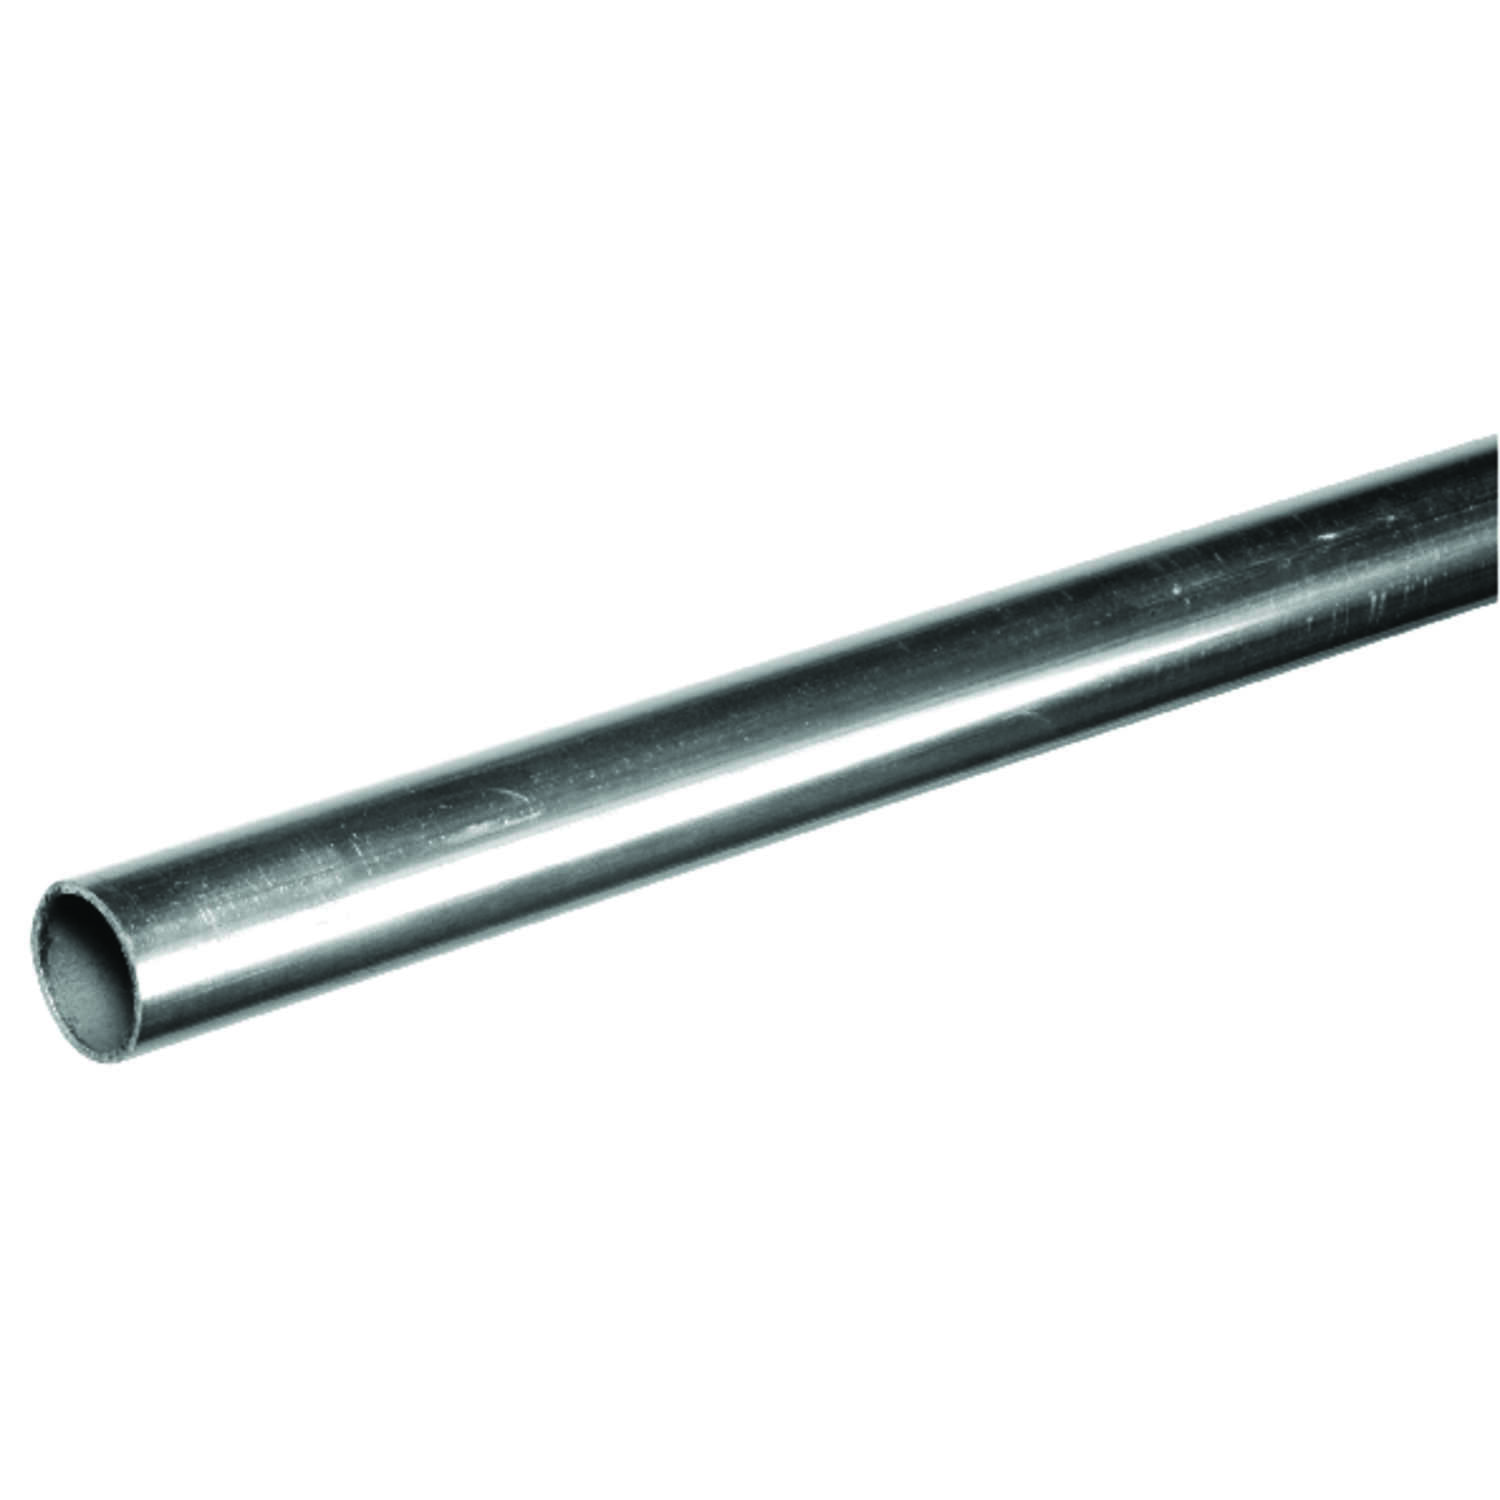 Boltmaster  3/4 in. Dia. x 6 ft. L Round  Aluminum Tube